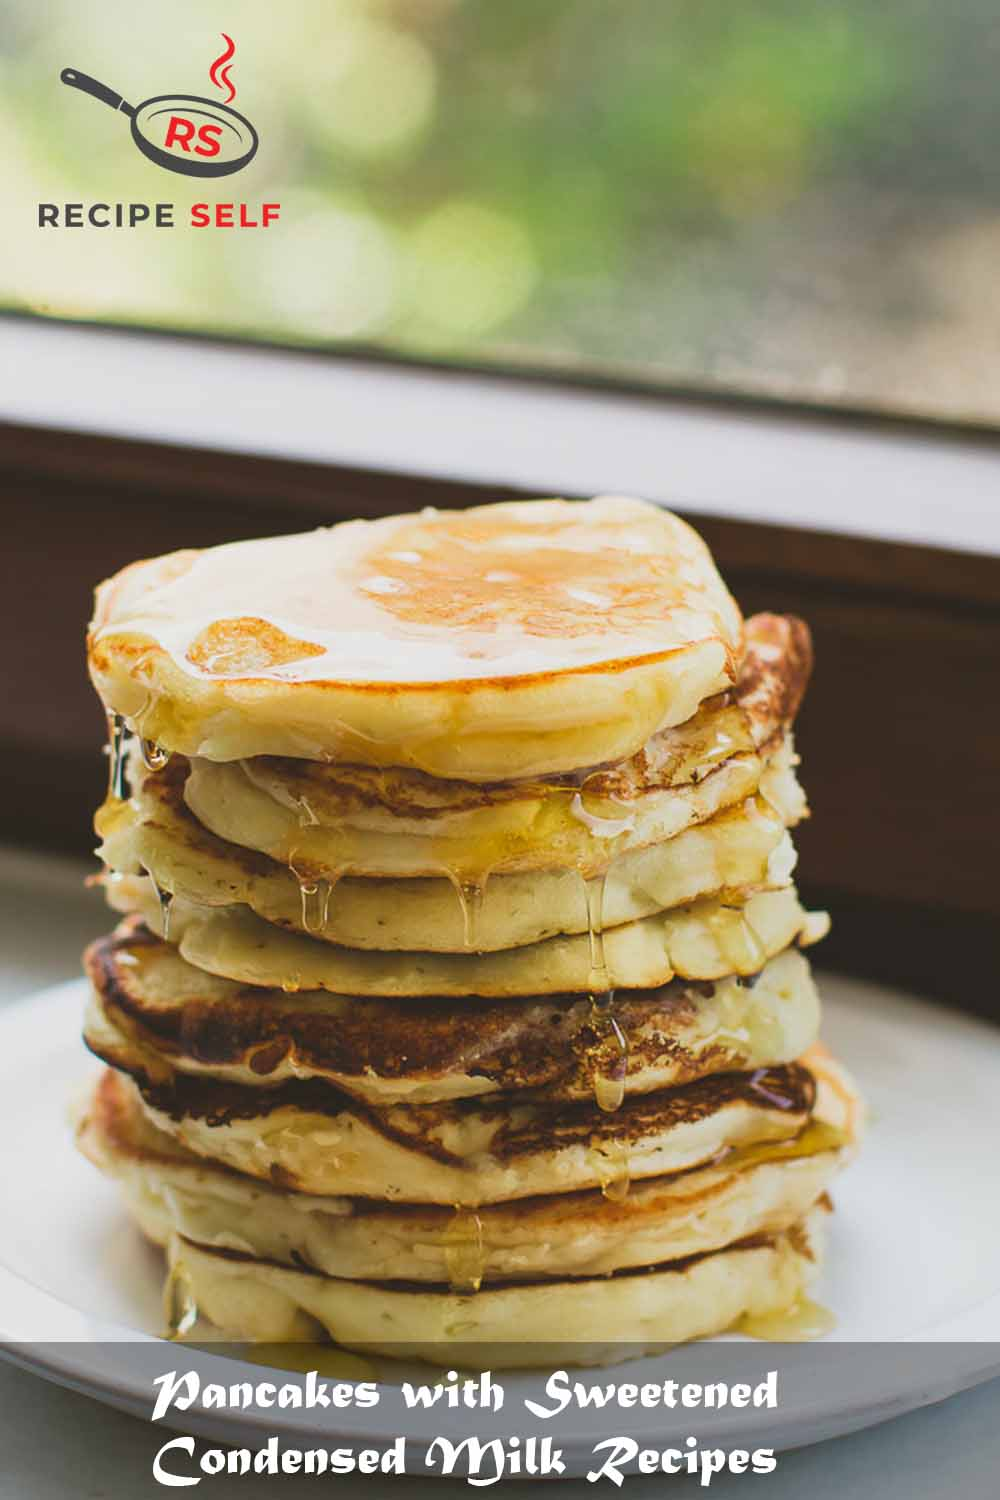 Pancakes with Sweetened Condensed Milk Recipes